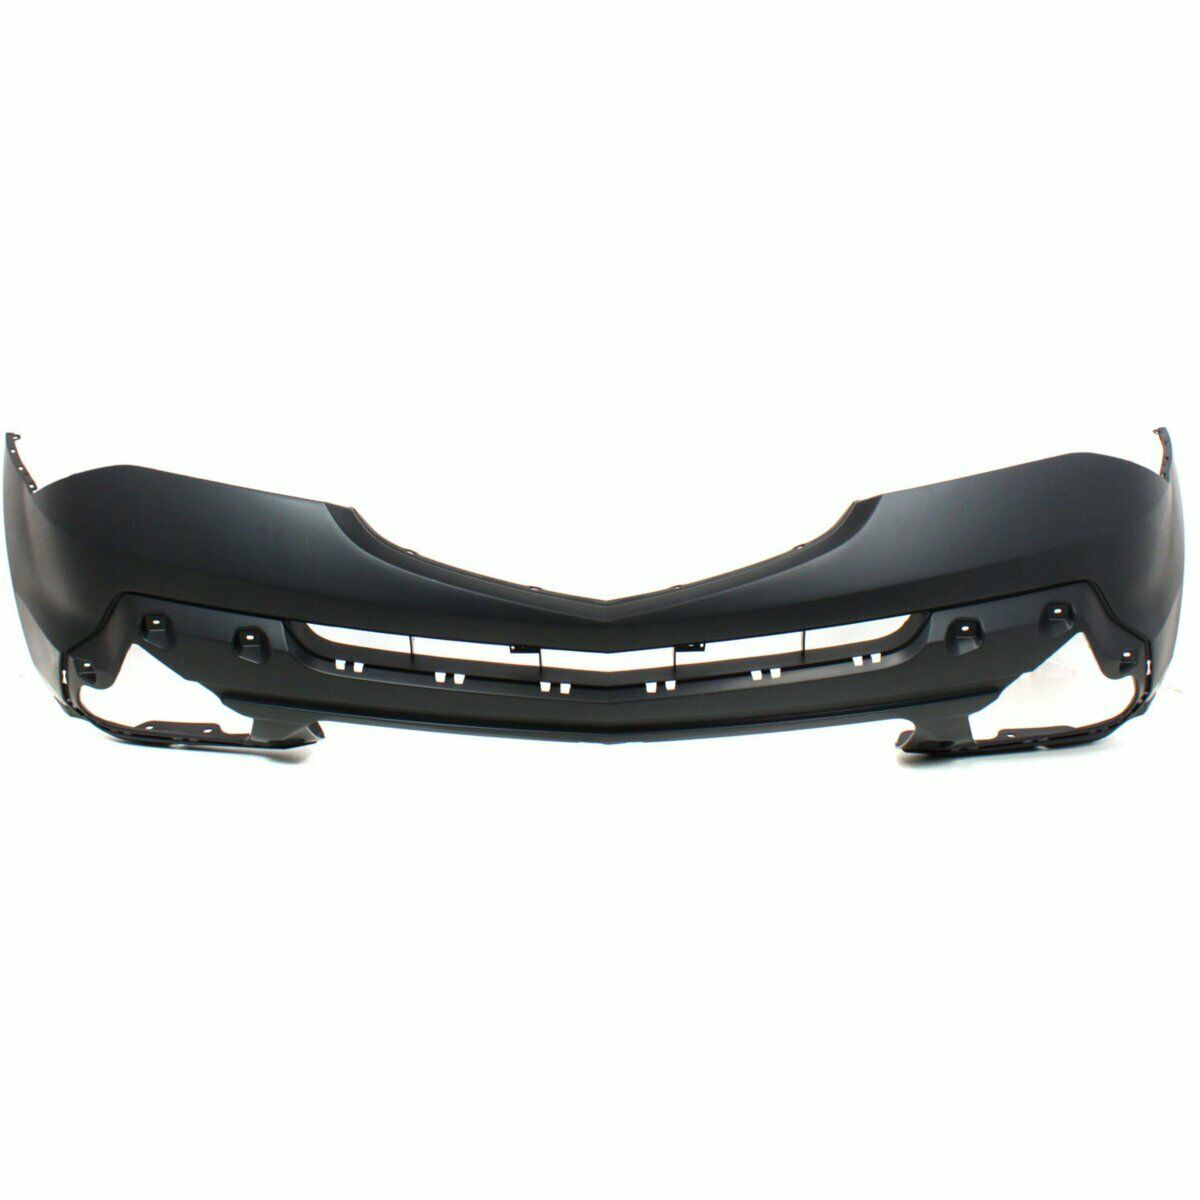 2007-2009 Acura MDX Front Bumper Painted to Match